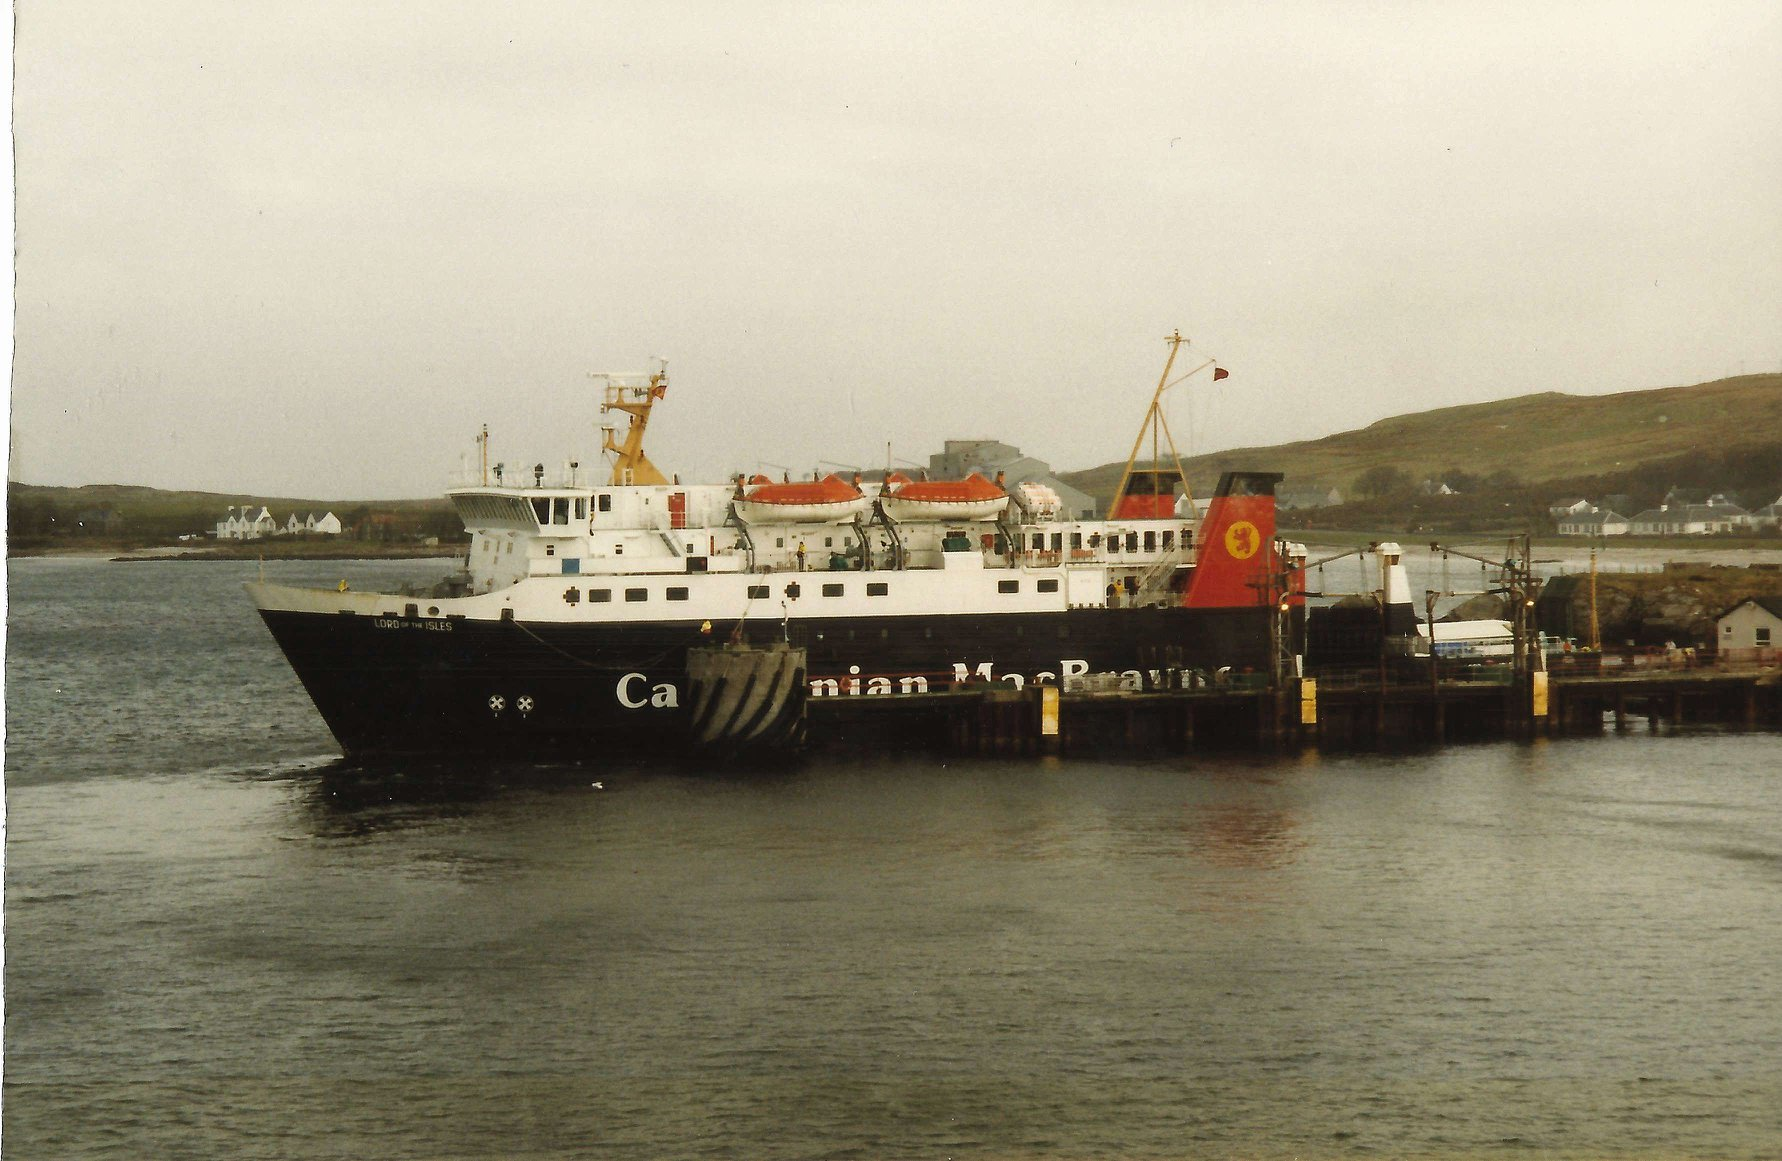 Lord of the Isles at Port Ellen (Iain McPherson)